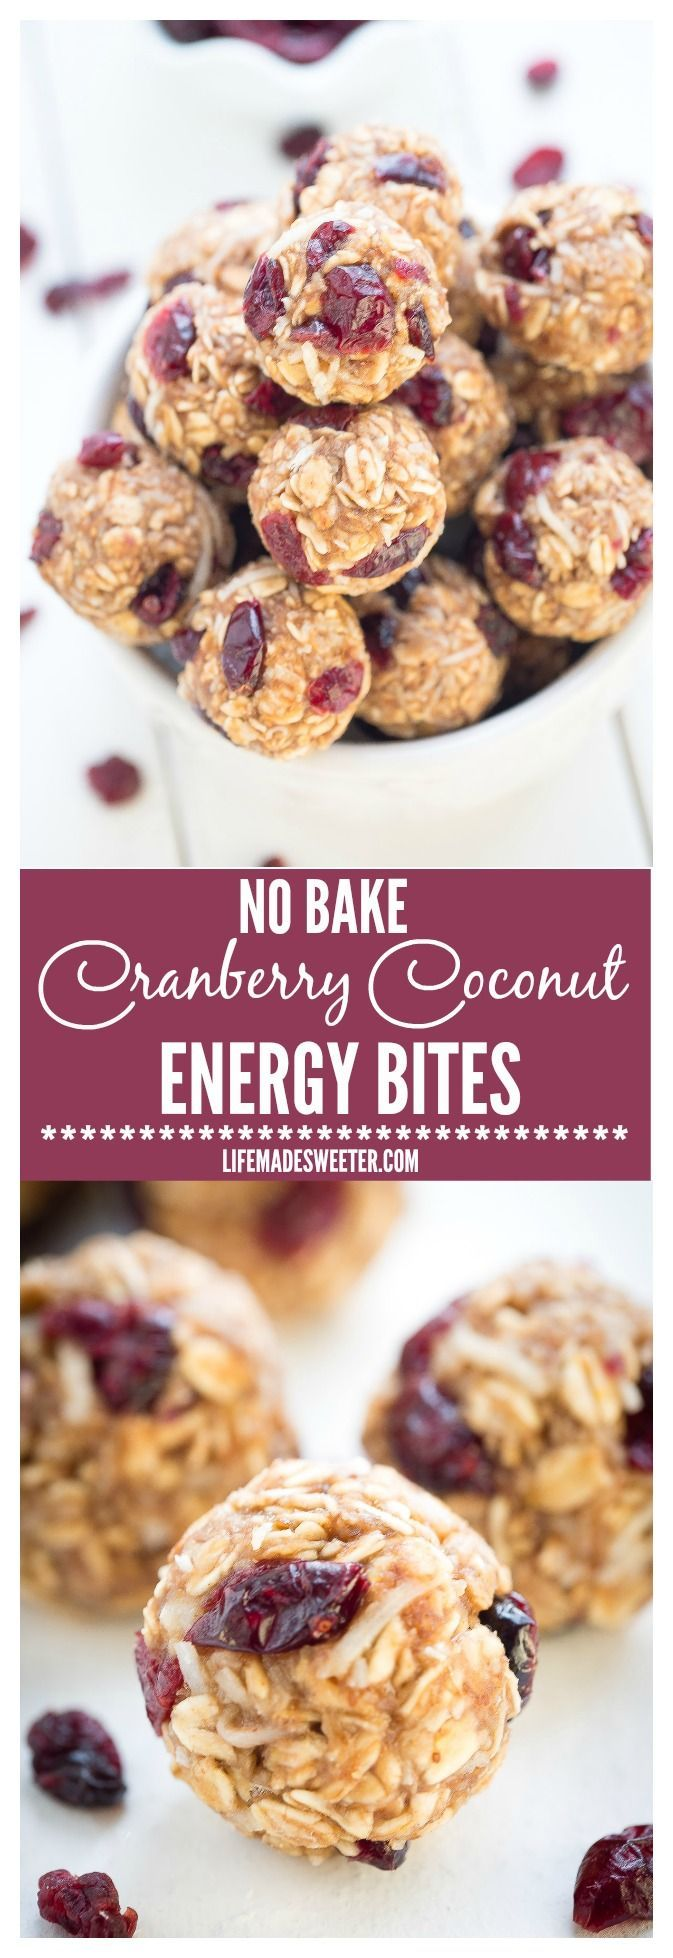 No Bake Cranberry Coconut Energy Bites make the perfect snack on the go and are so easy to make and customize. They make a great vegan, gluten free snack option with NO added REFINED sugar. Pin this clean eating recipe to make later.